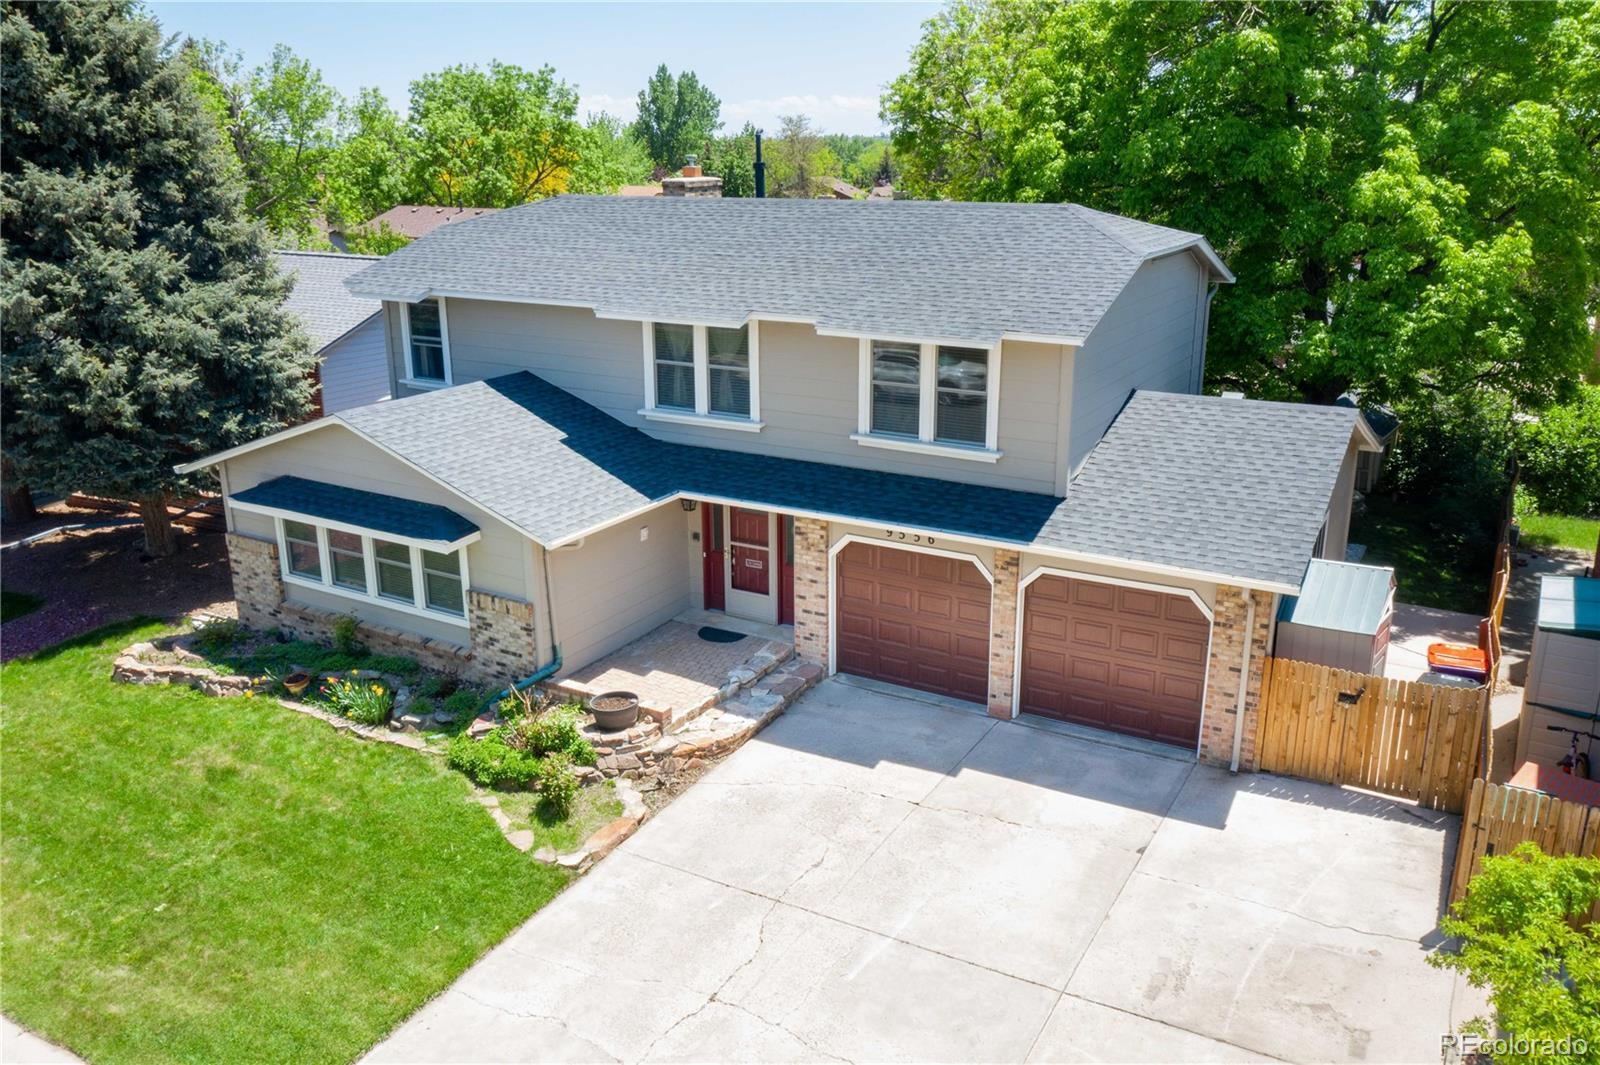 9556 W 89th Place, Westminster, CO 80021 - #: 6805273